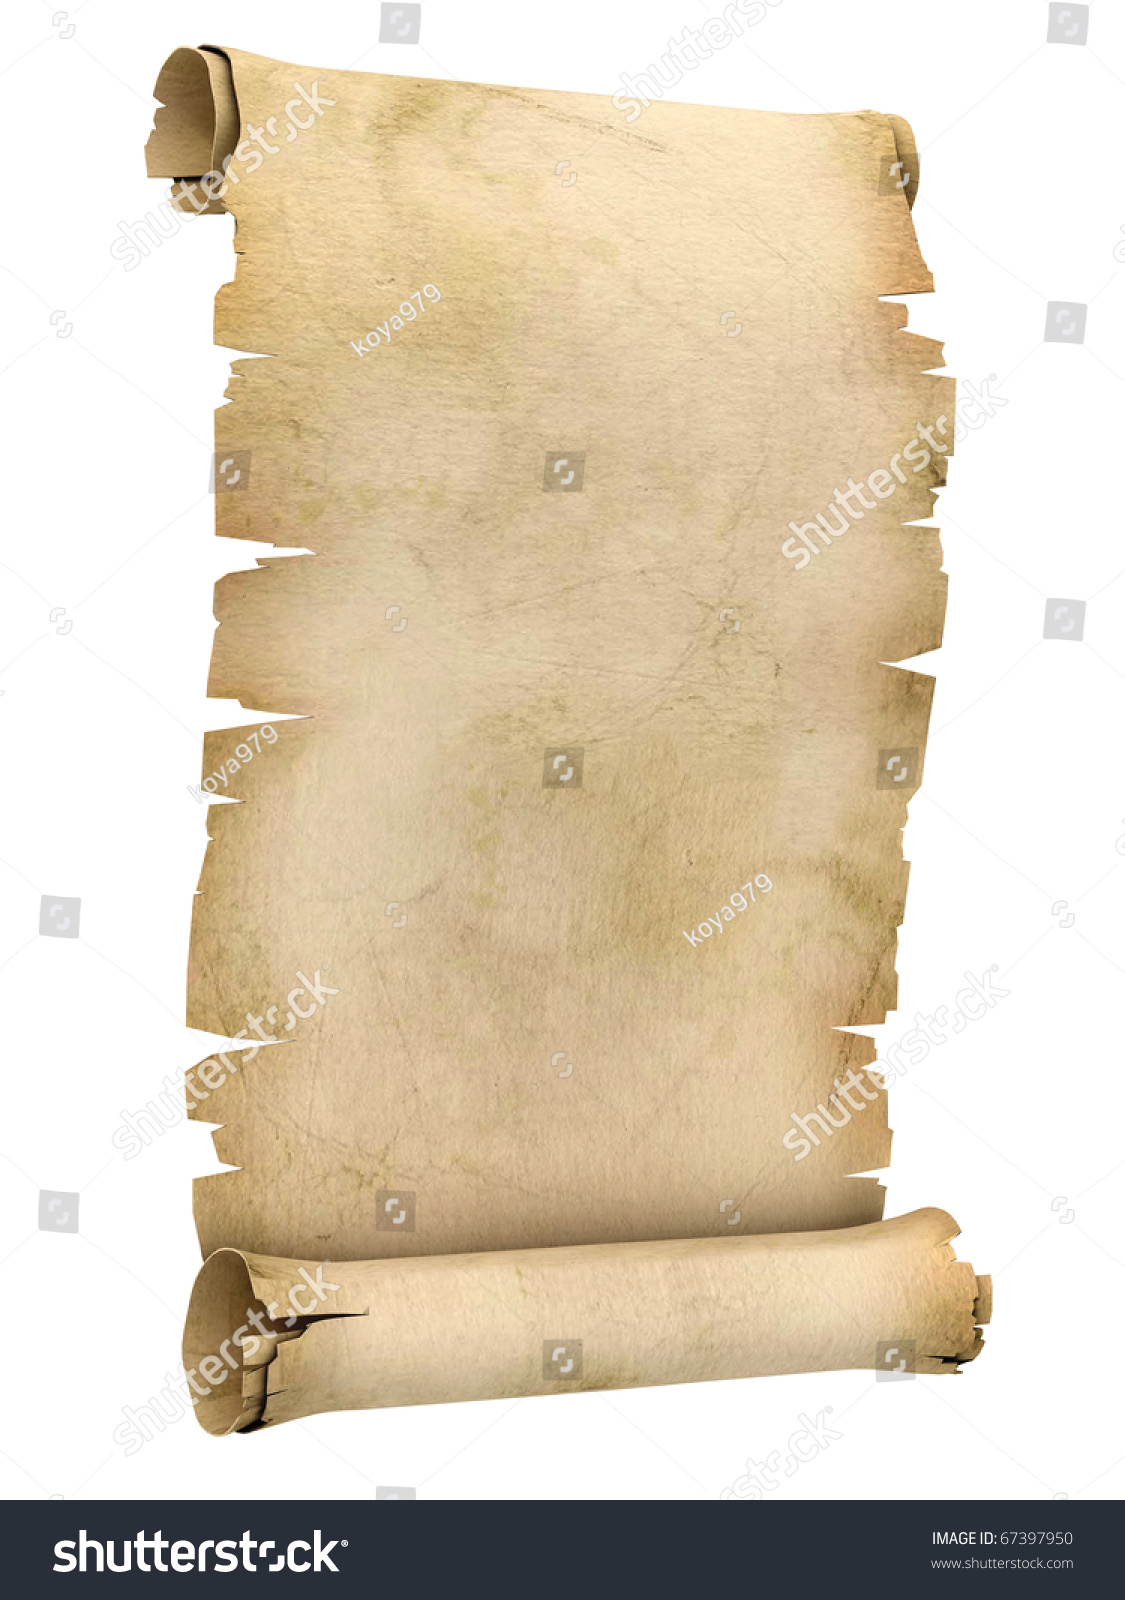 parchment scroll 3d illustration isolated on stock